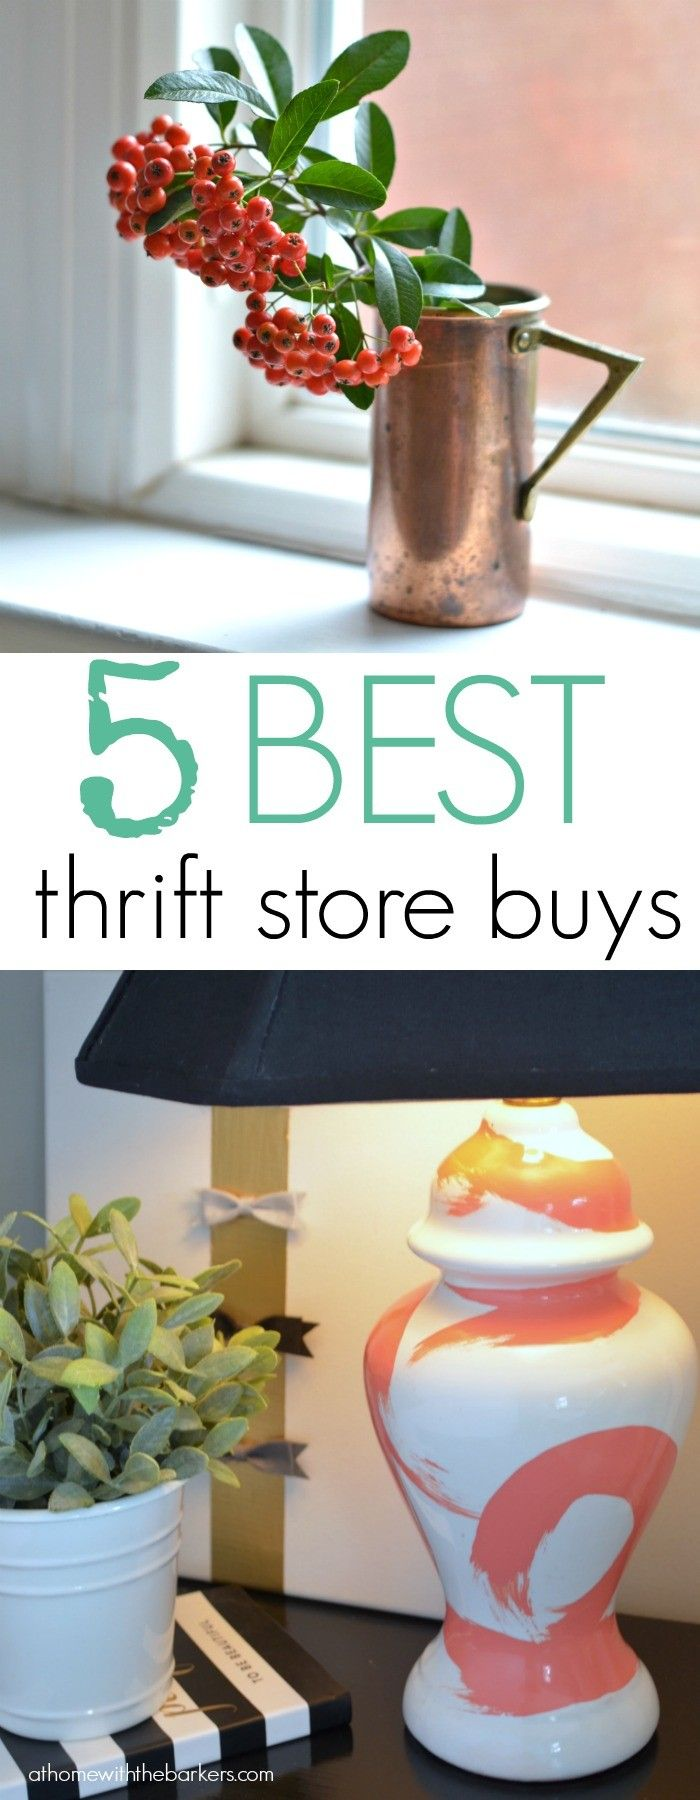 17 best images about thrift store tips on pinterest for Stores to decorate your home